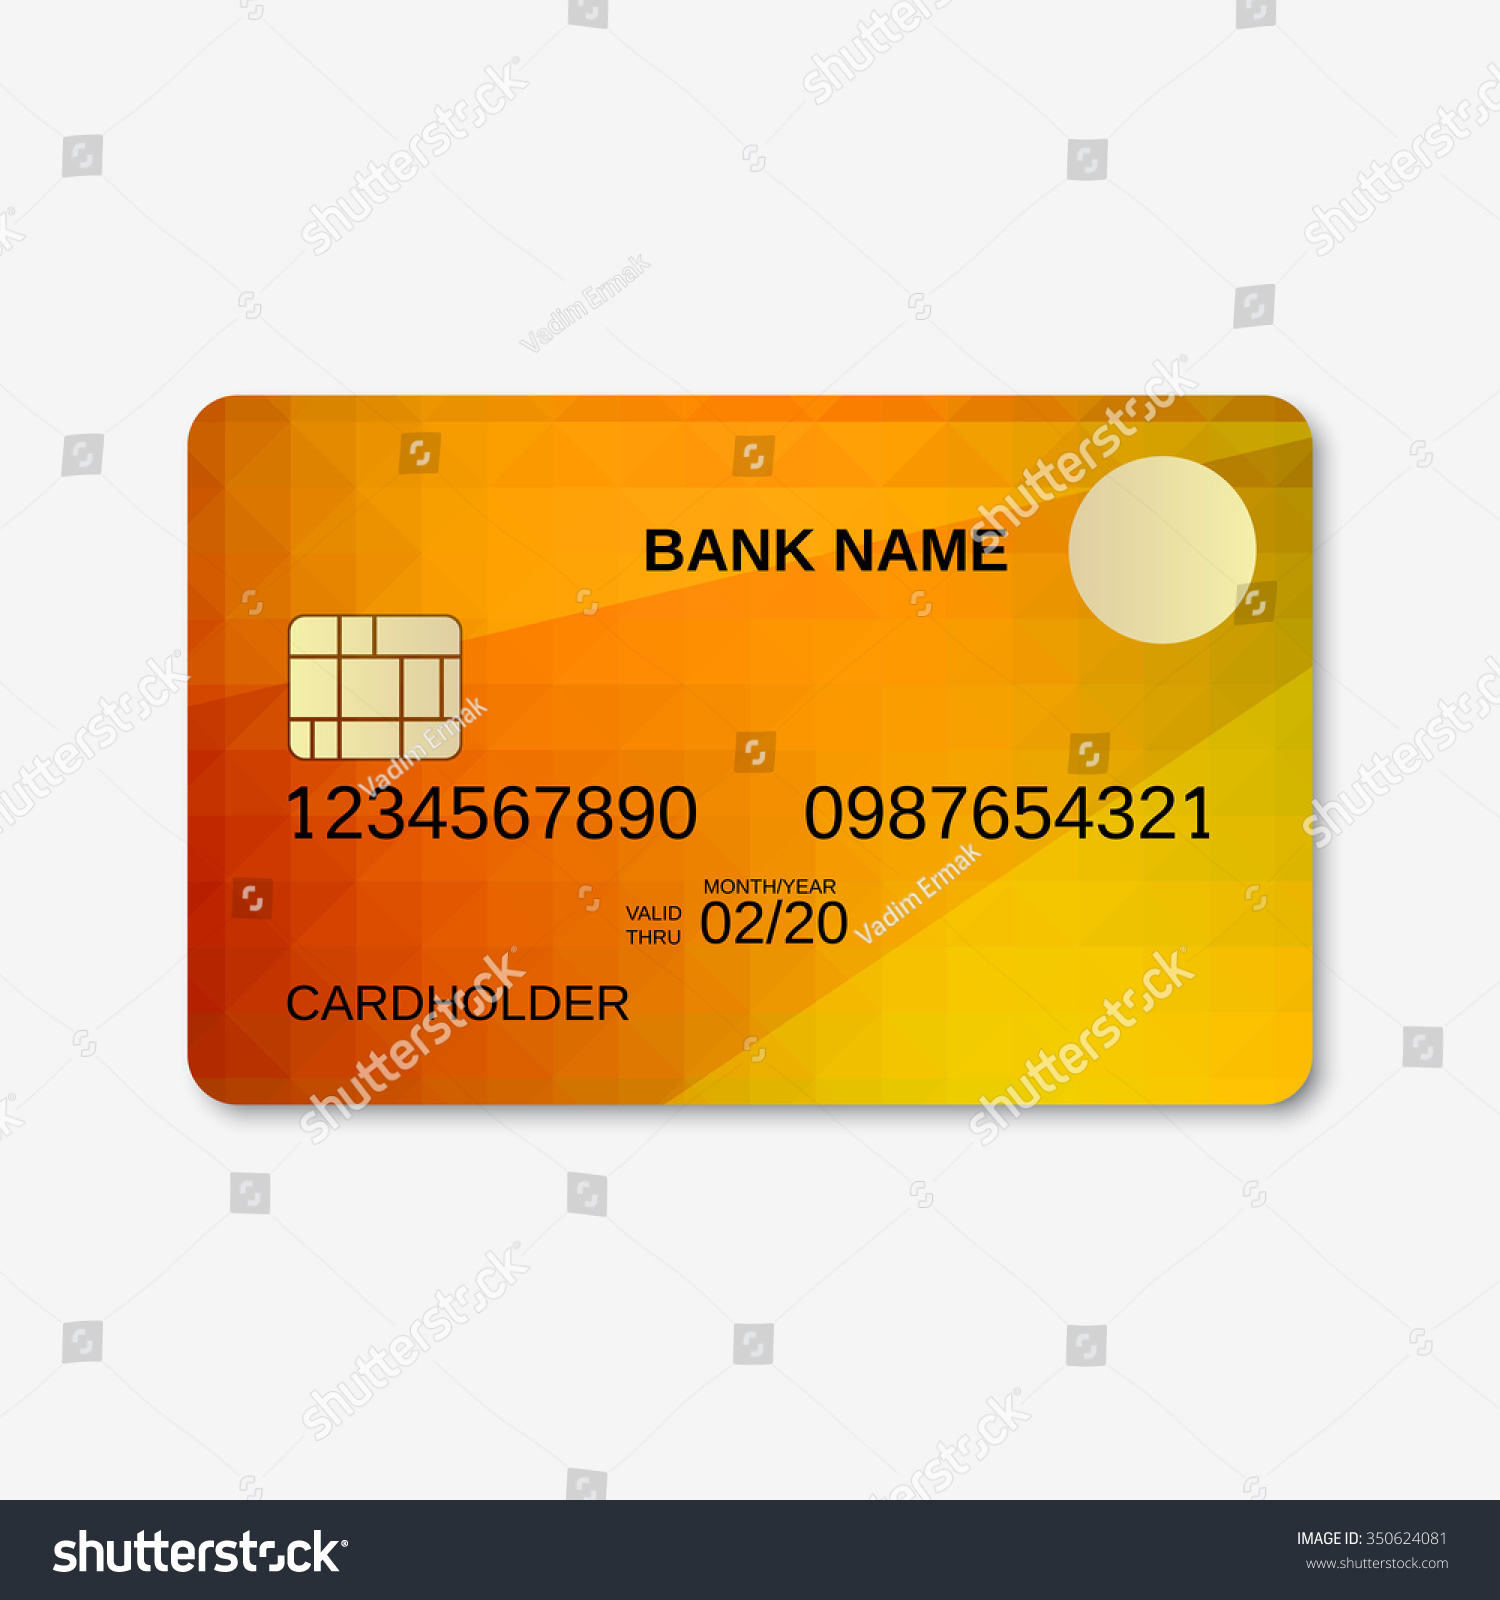 bank card credit card discount card stock vector 350624081 shutterstock. Black Bedroom Furniture Sets. Home Design Ideas